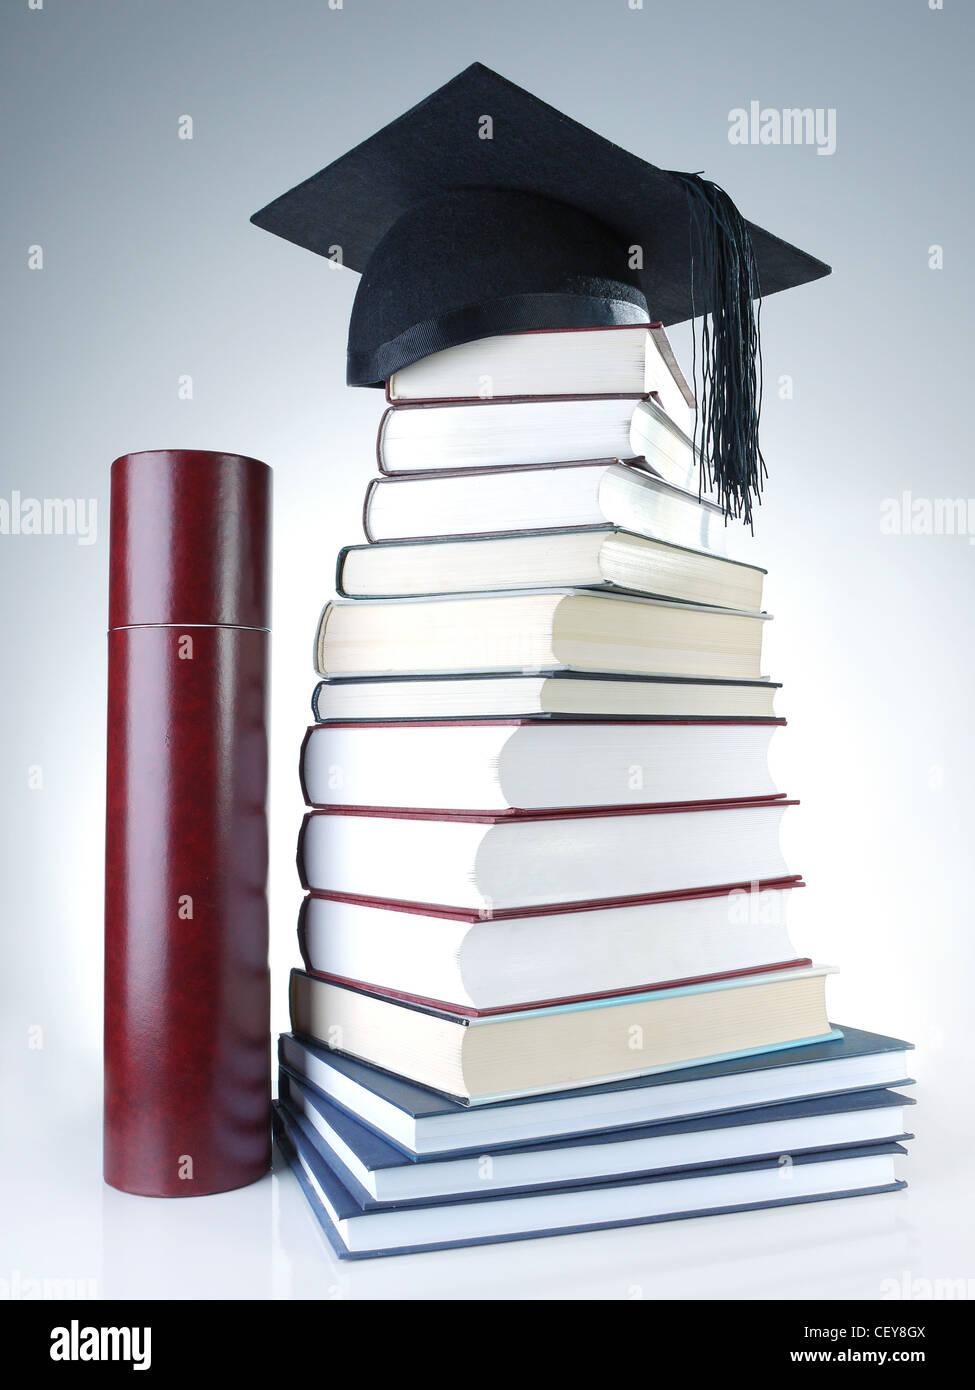 Black graduation cap on pile of books with diploma tube - Stock Image